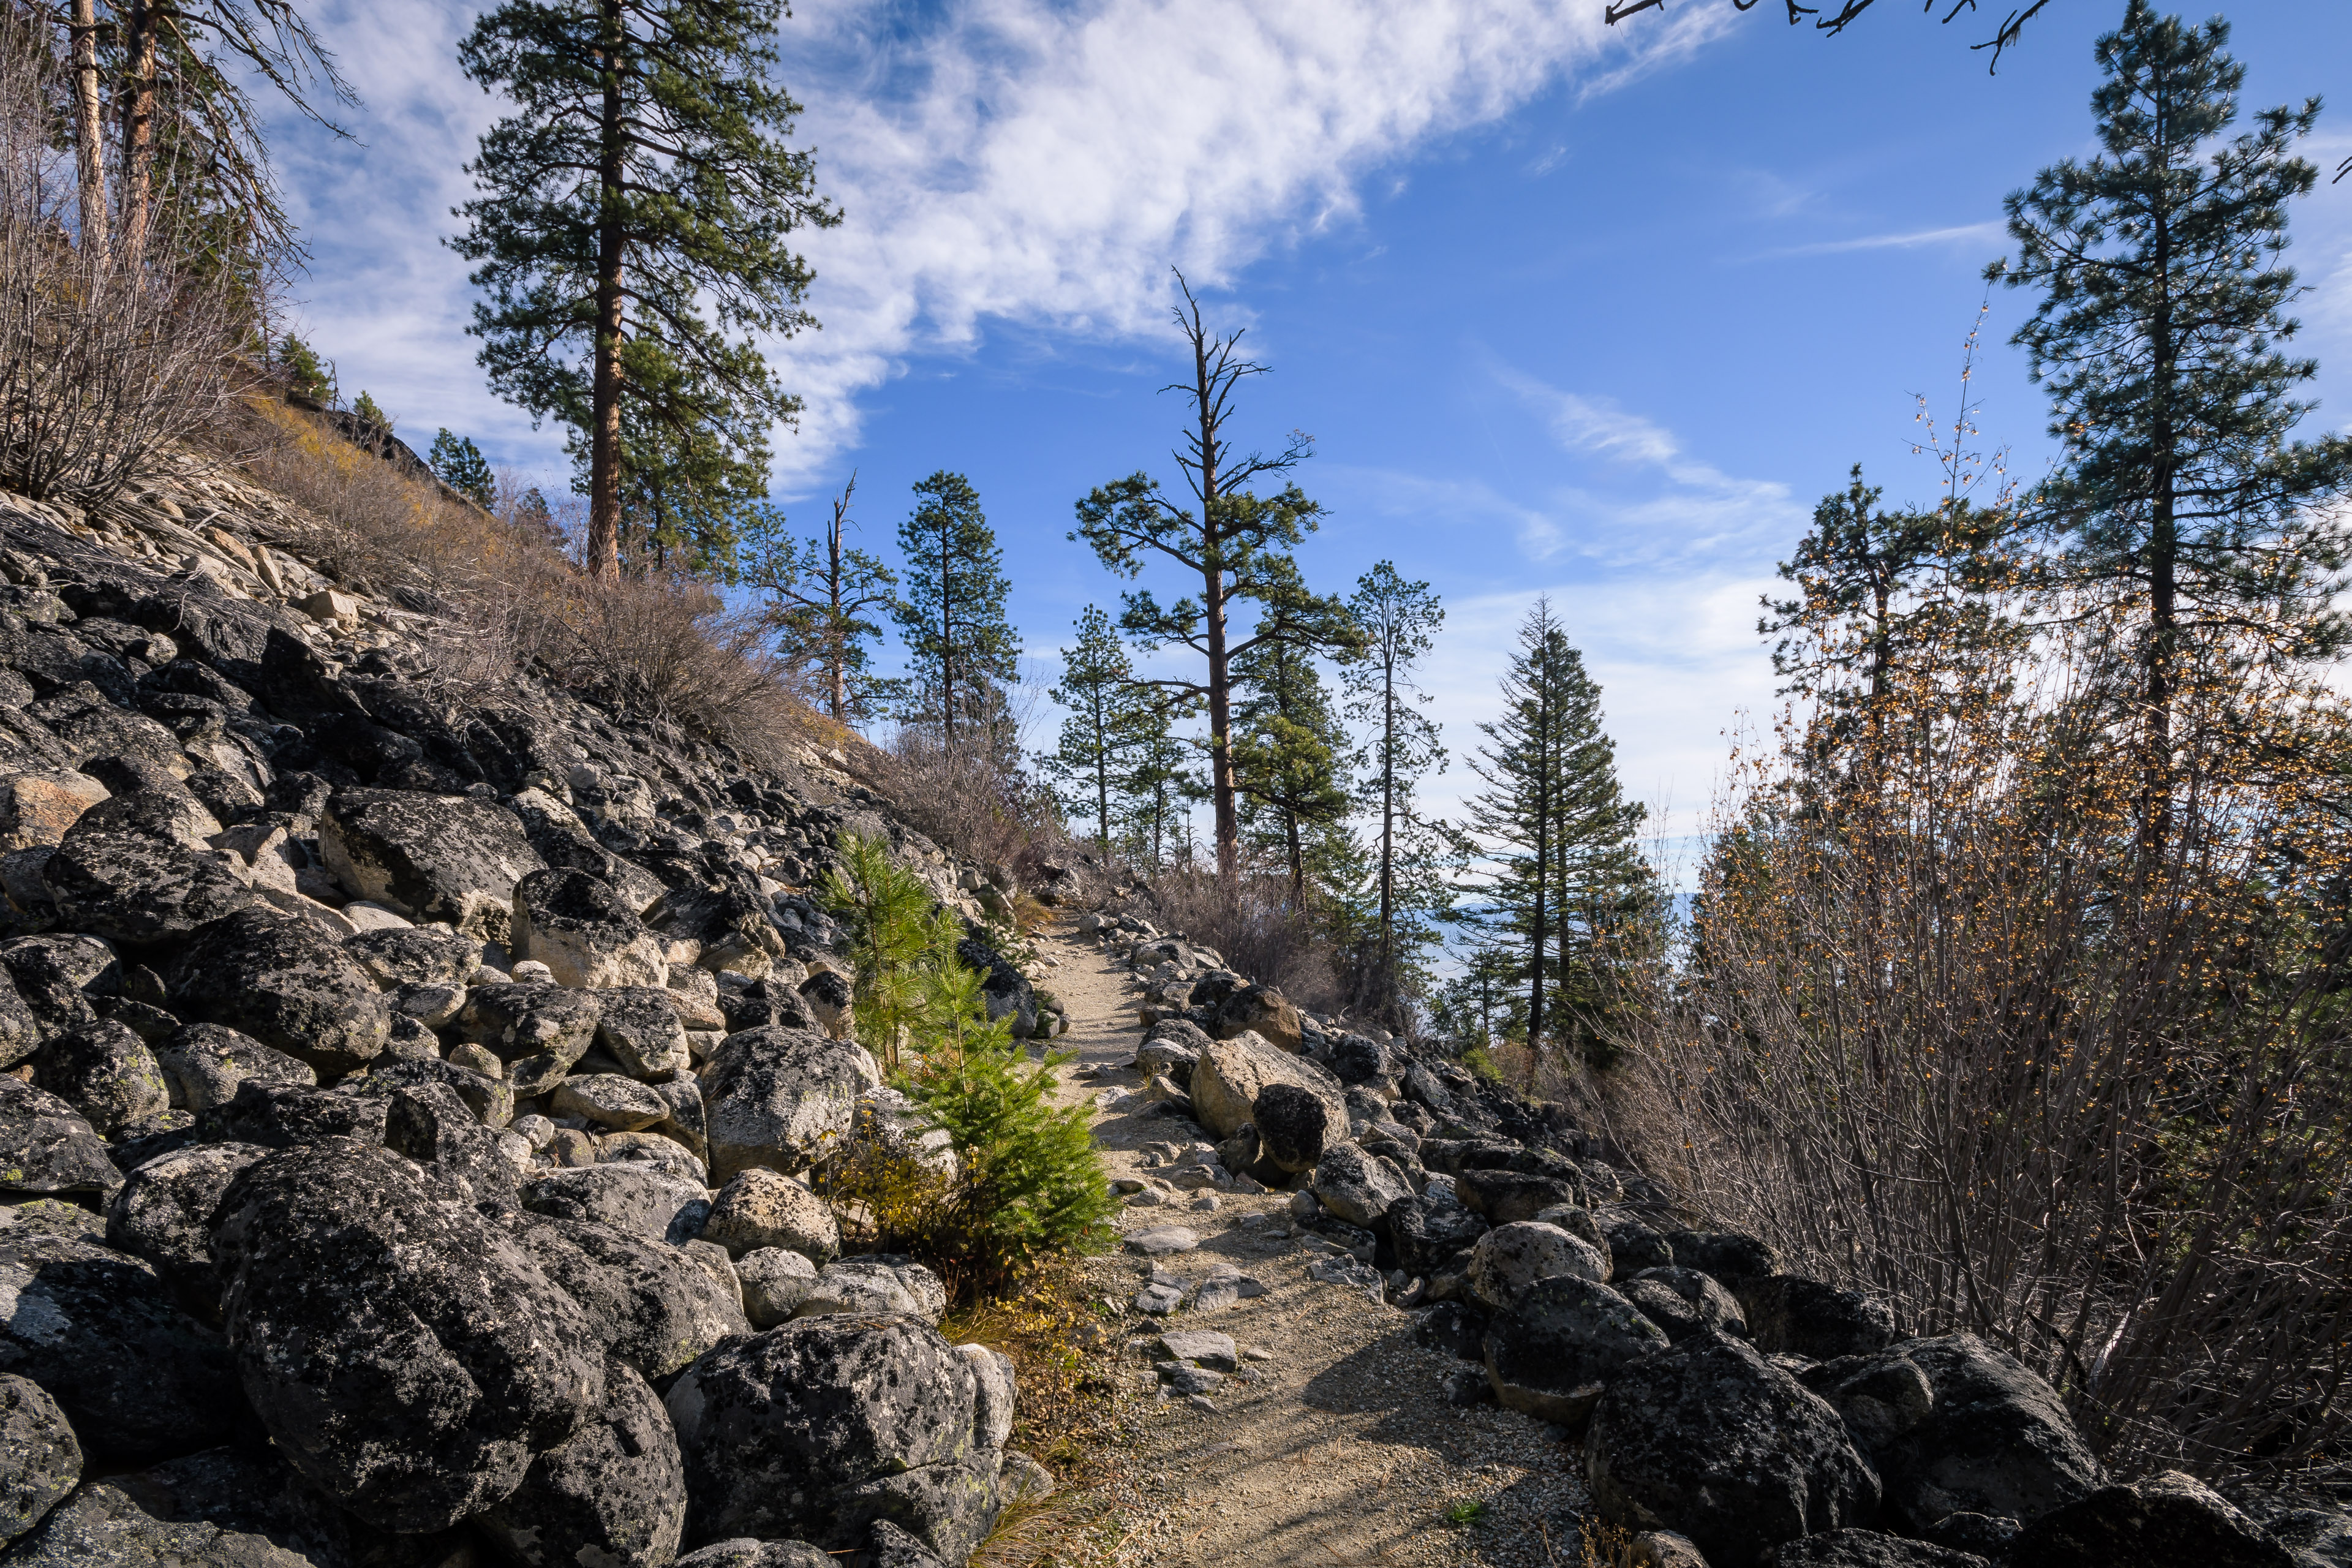 The carved trail to the Blodgett Canyon Overlook